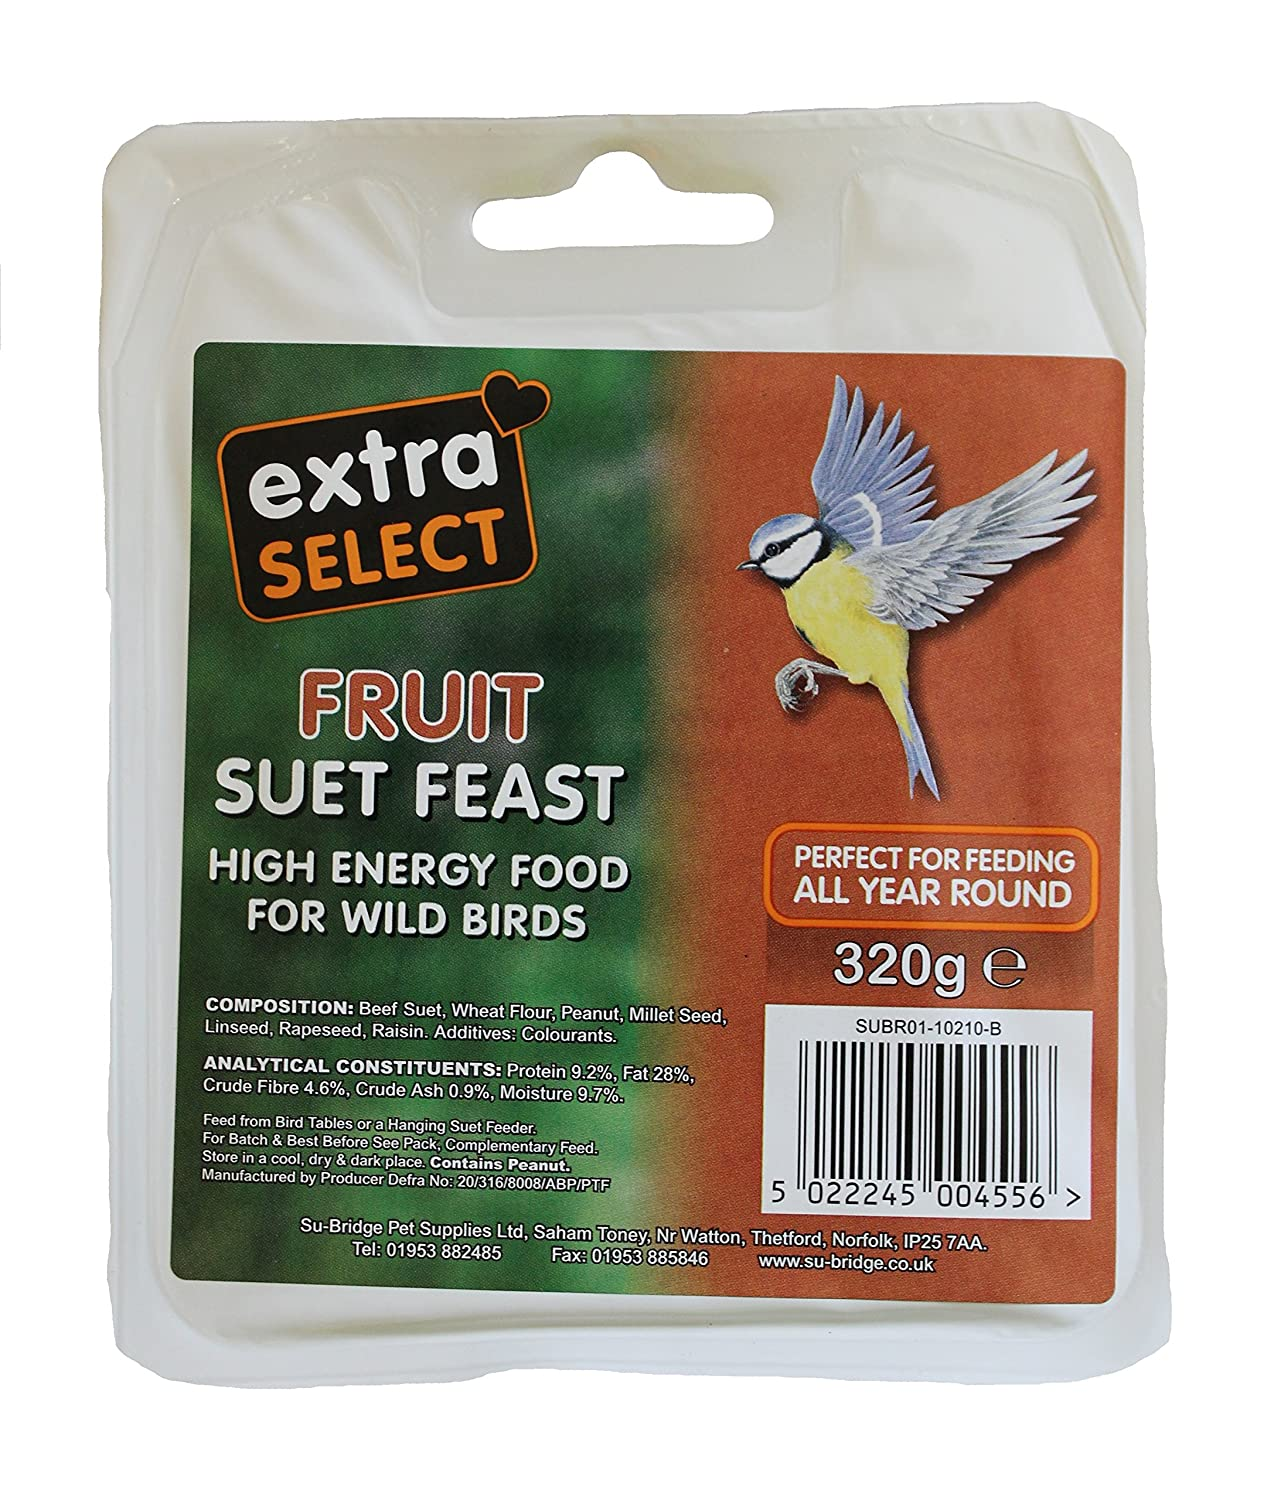 Extra Select High Energy Suet Pellets Fruit Tub 3kg Su-Bridge Pet Supplies Ltd 08WB087